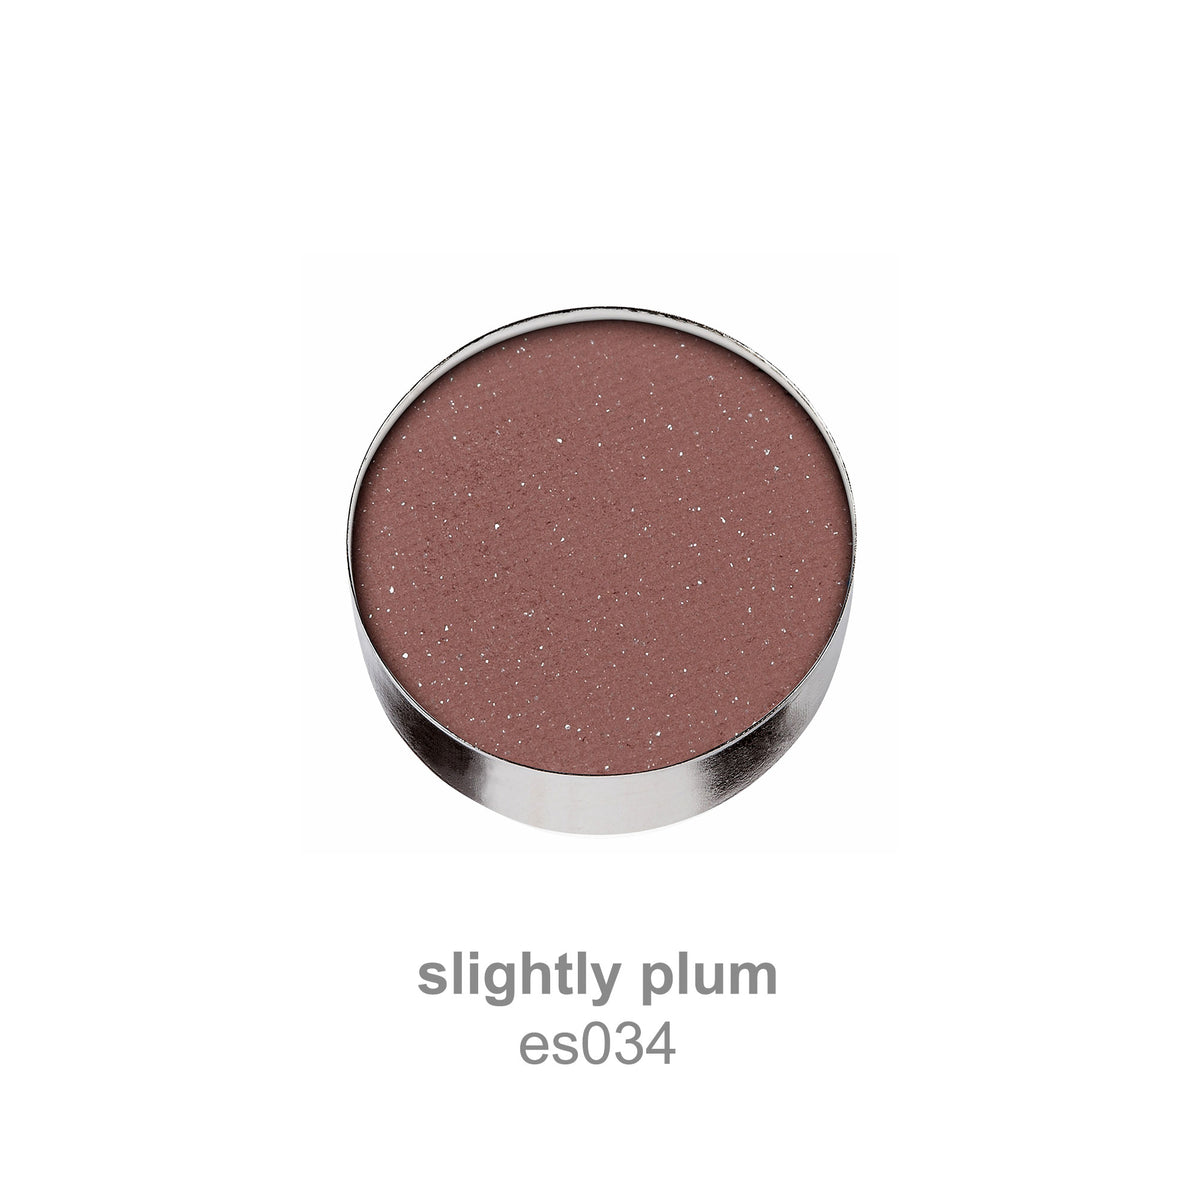 slightly plum (es034)